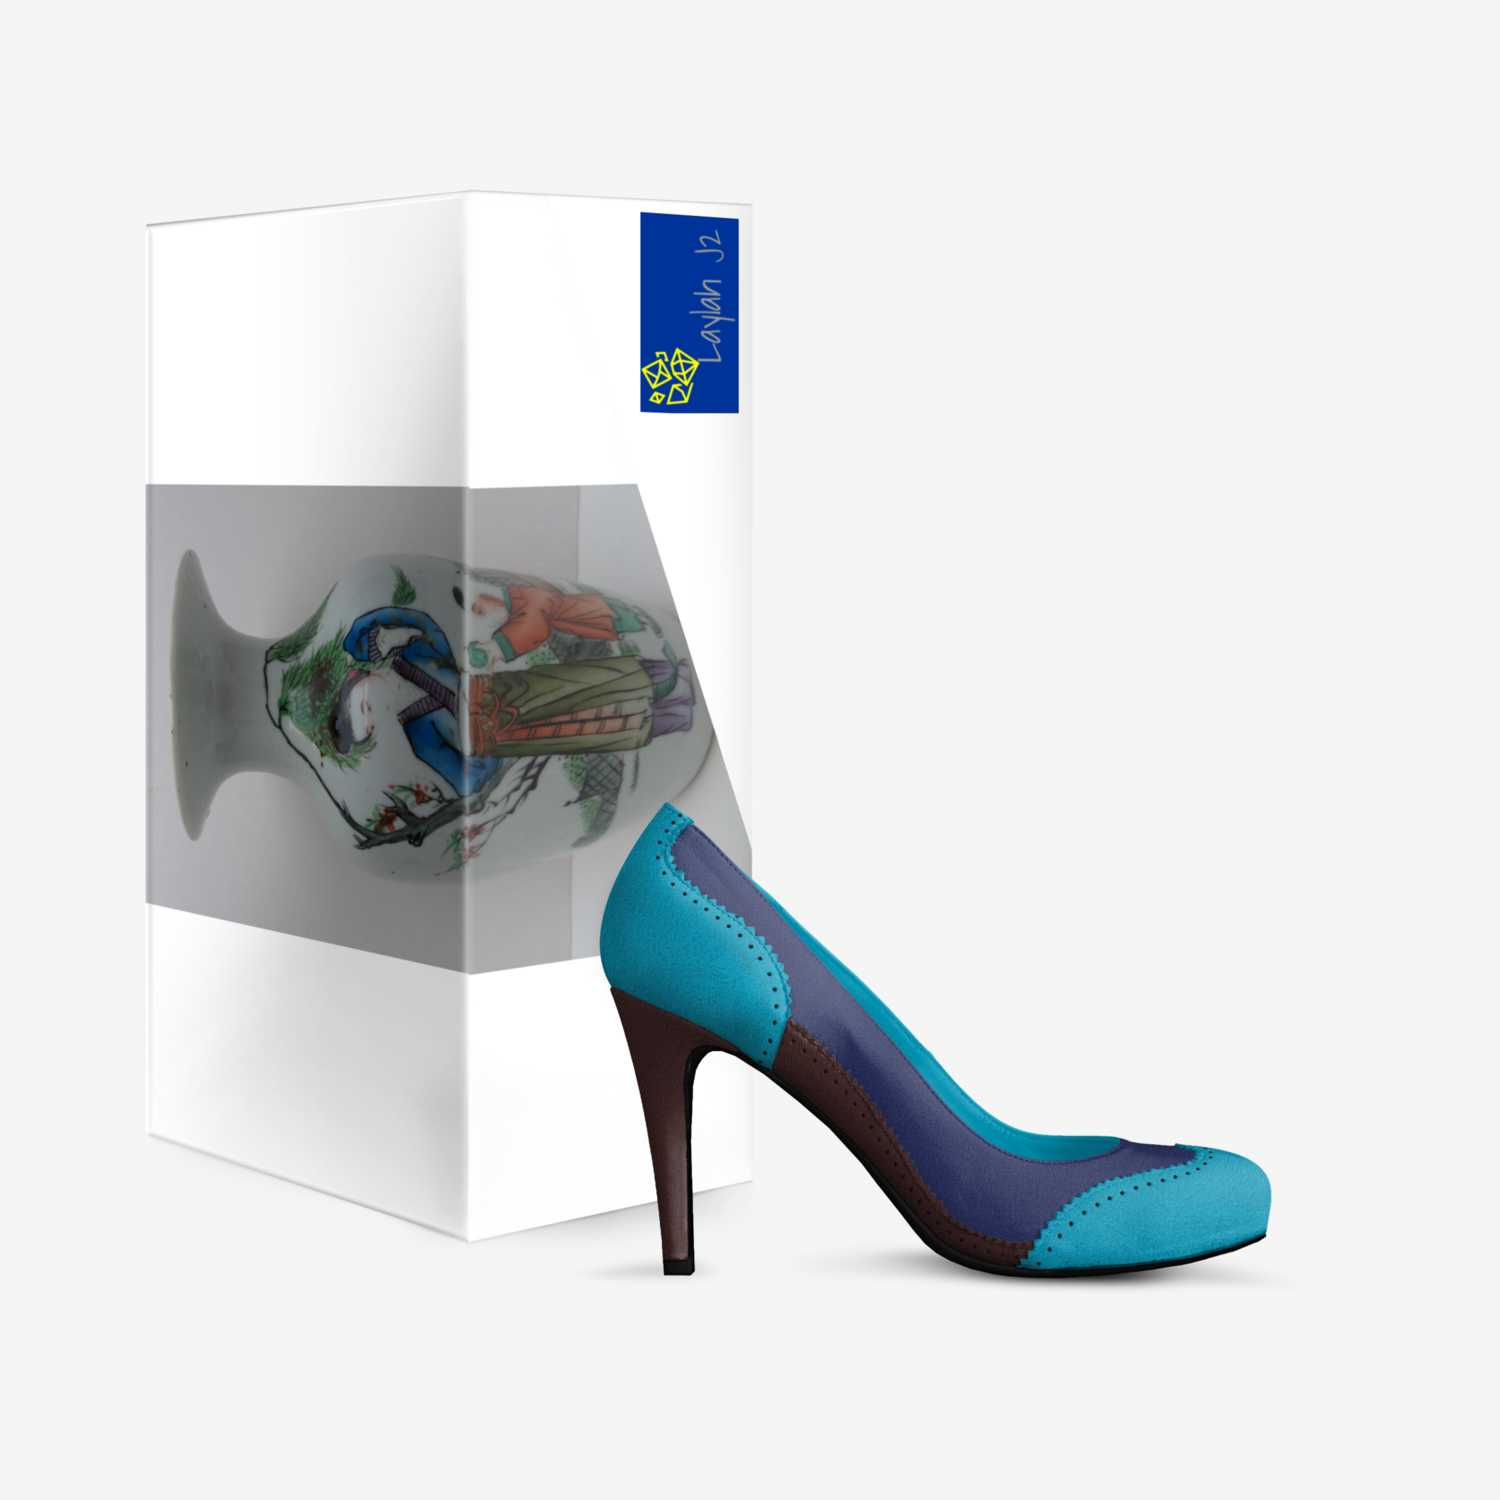 LaylahJ2 custom made in Italy shoes by La Shelle Jenkins   Box view